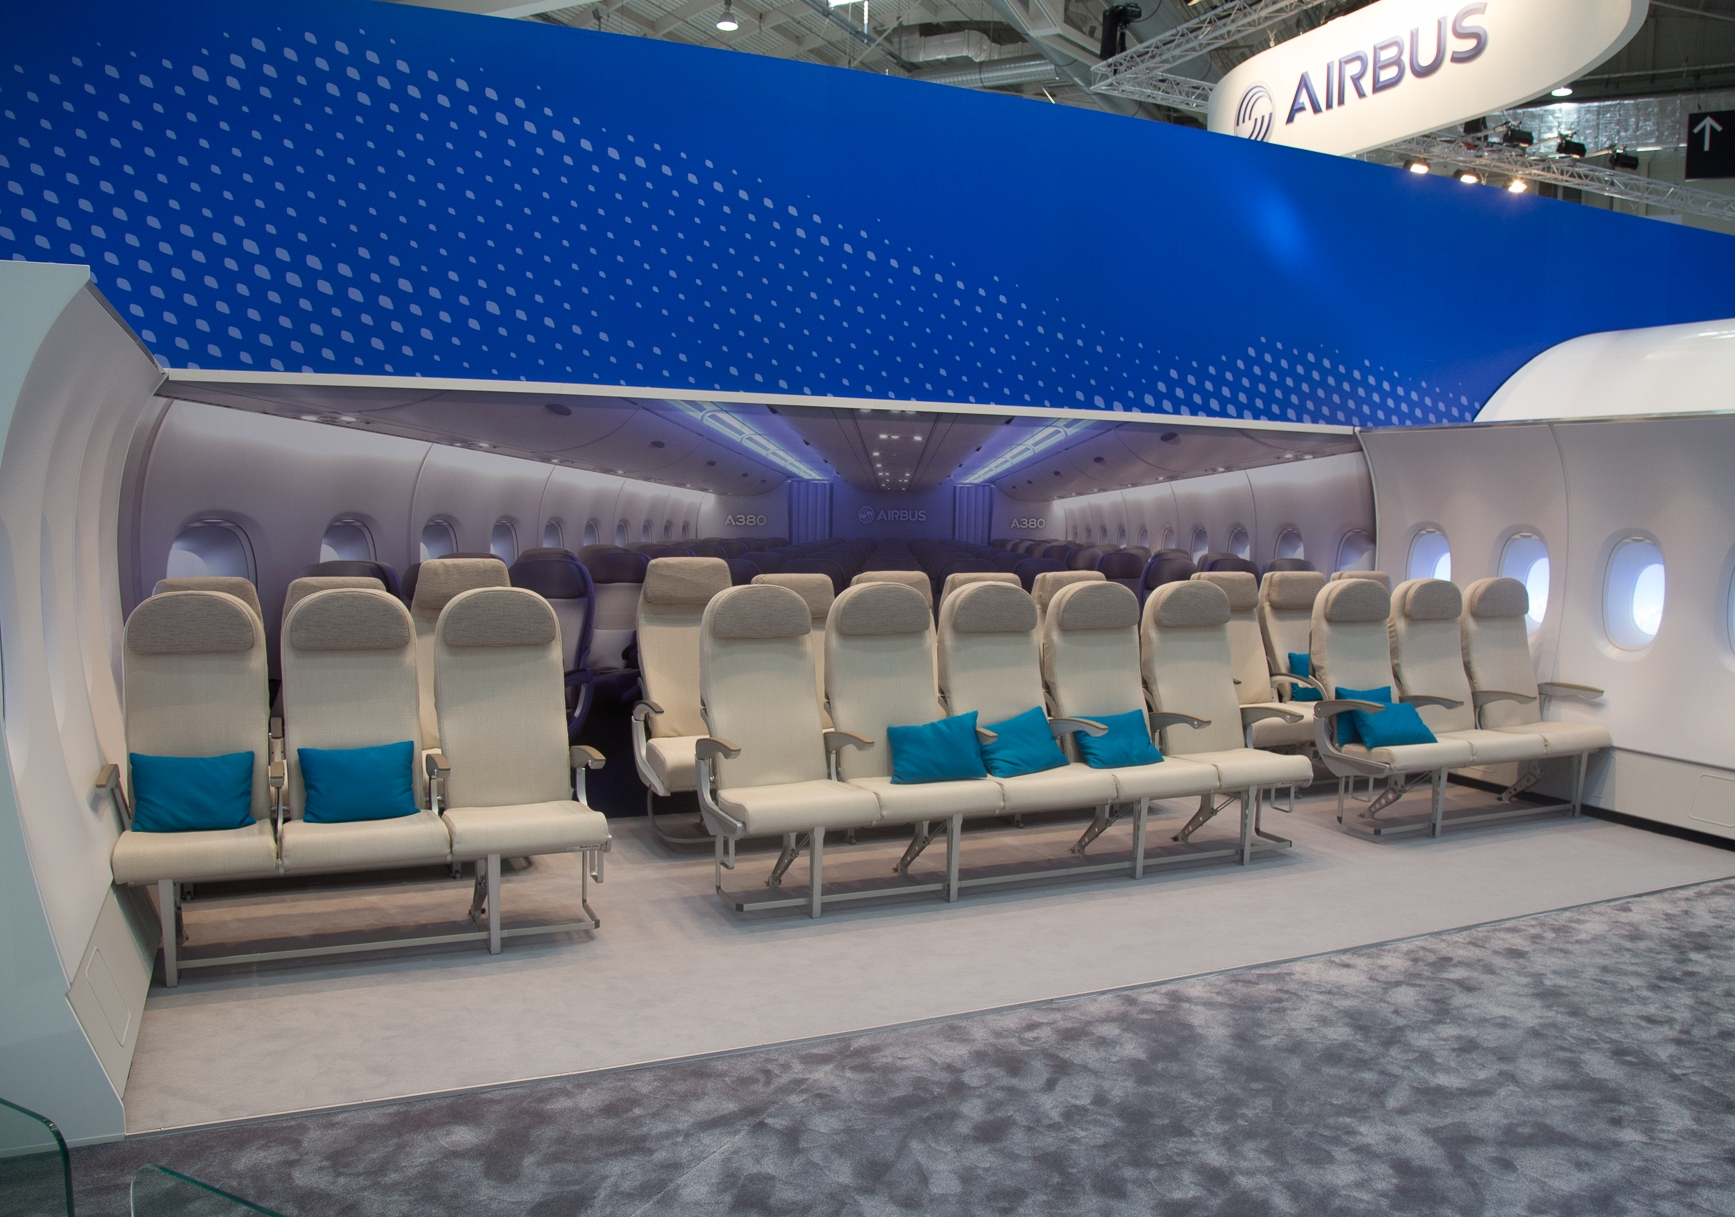 Airbus A380_Economy Class_Seat_11 abreast_double-sorry